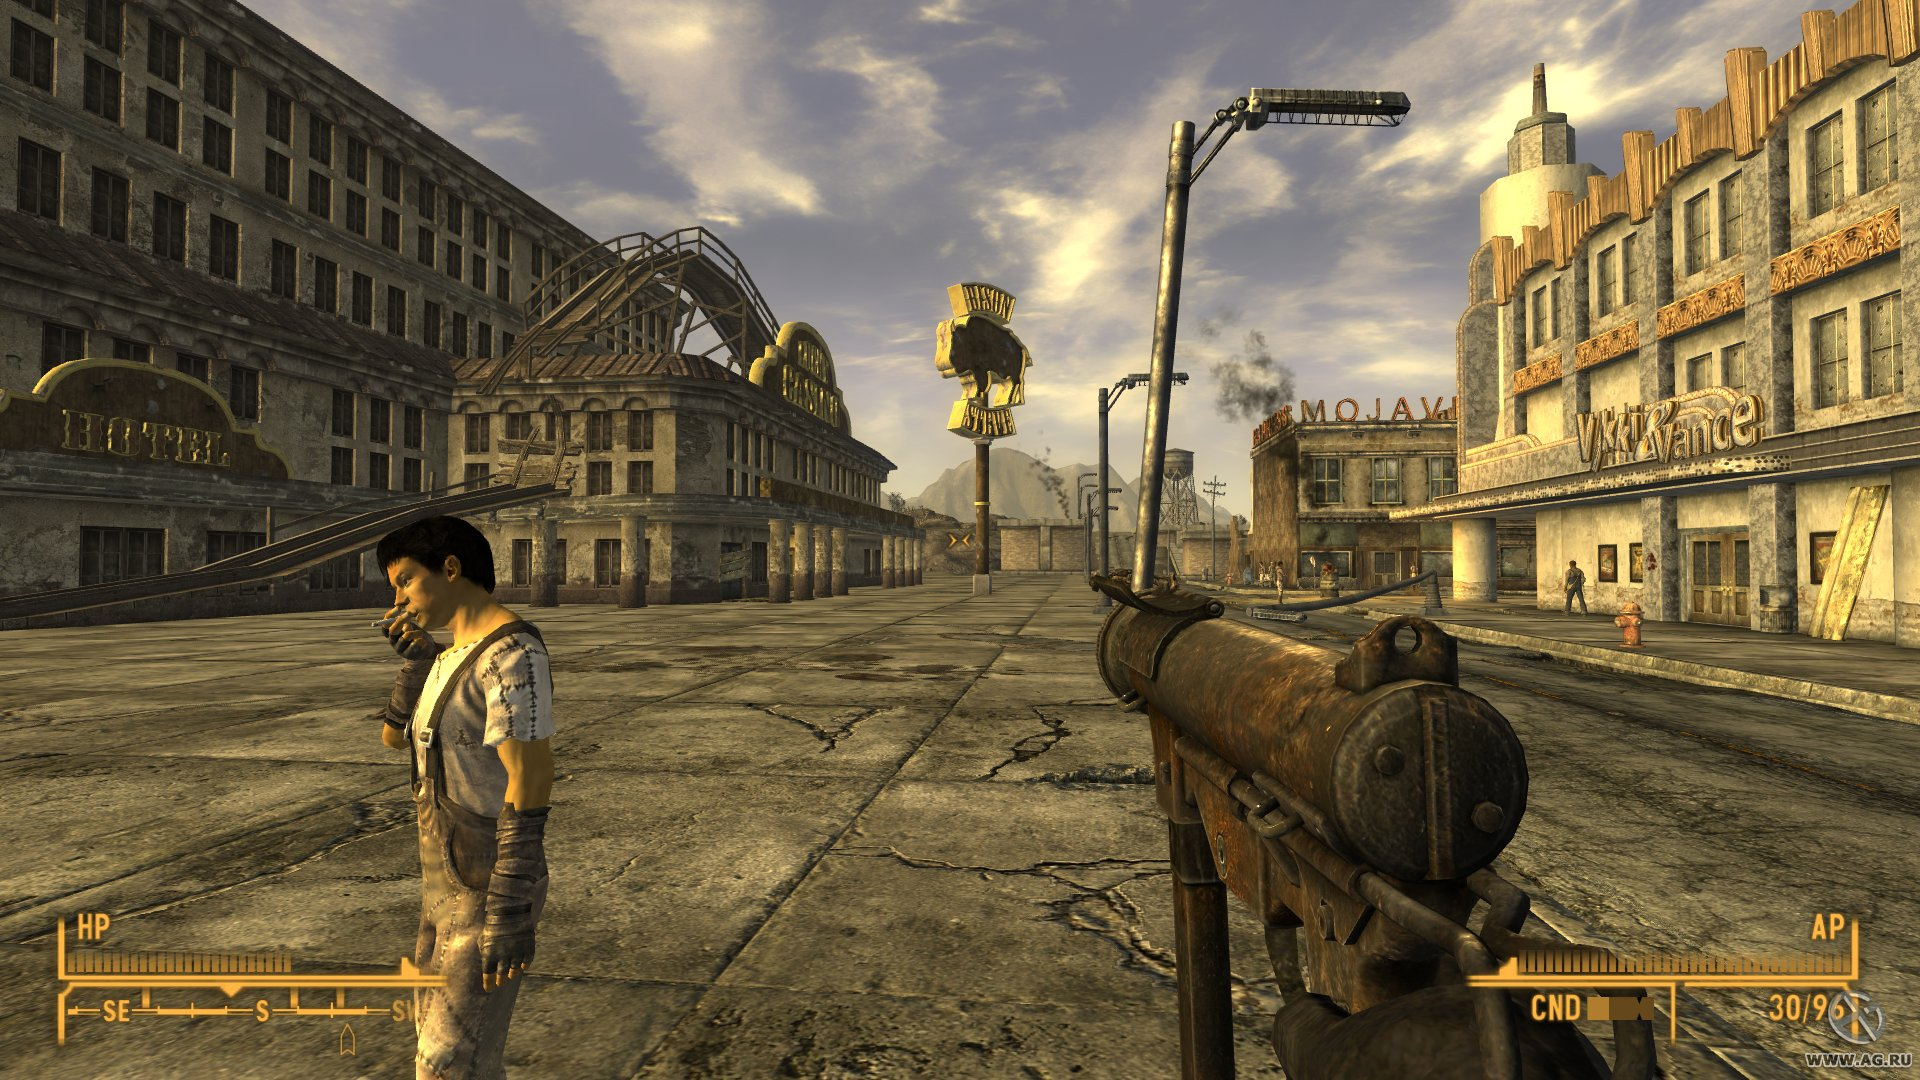 I'm going to give Fallout New Vegas a proper shot  Vanilla